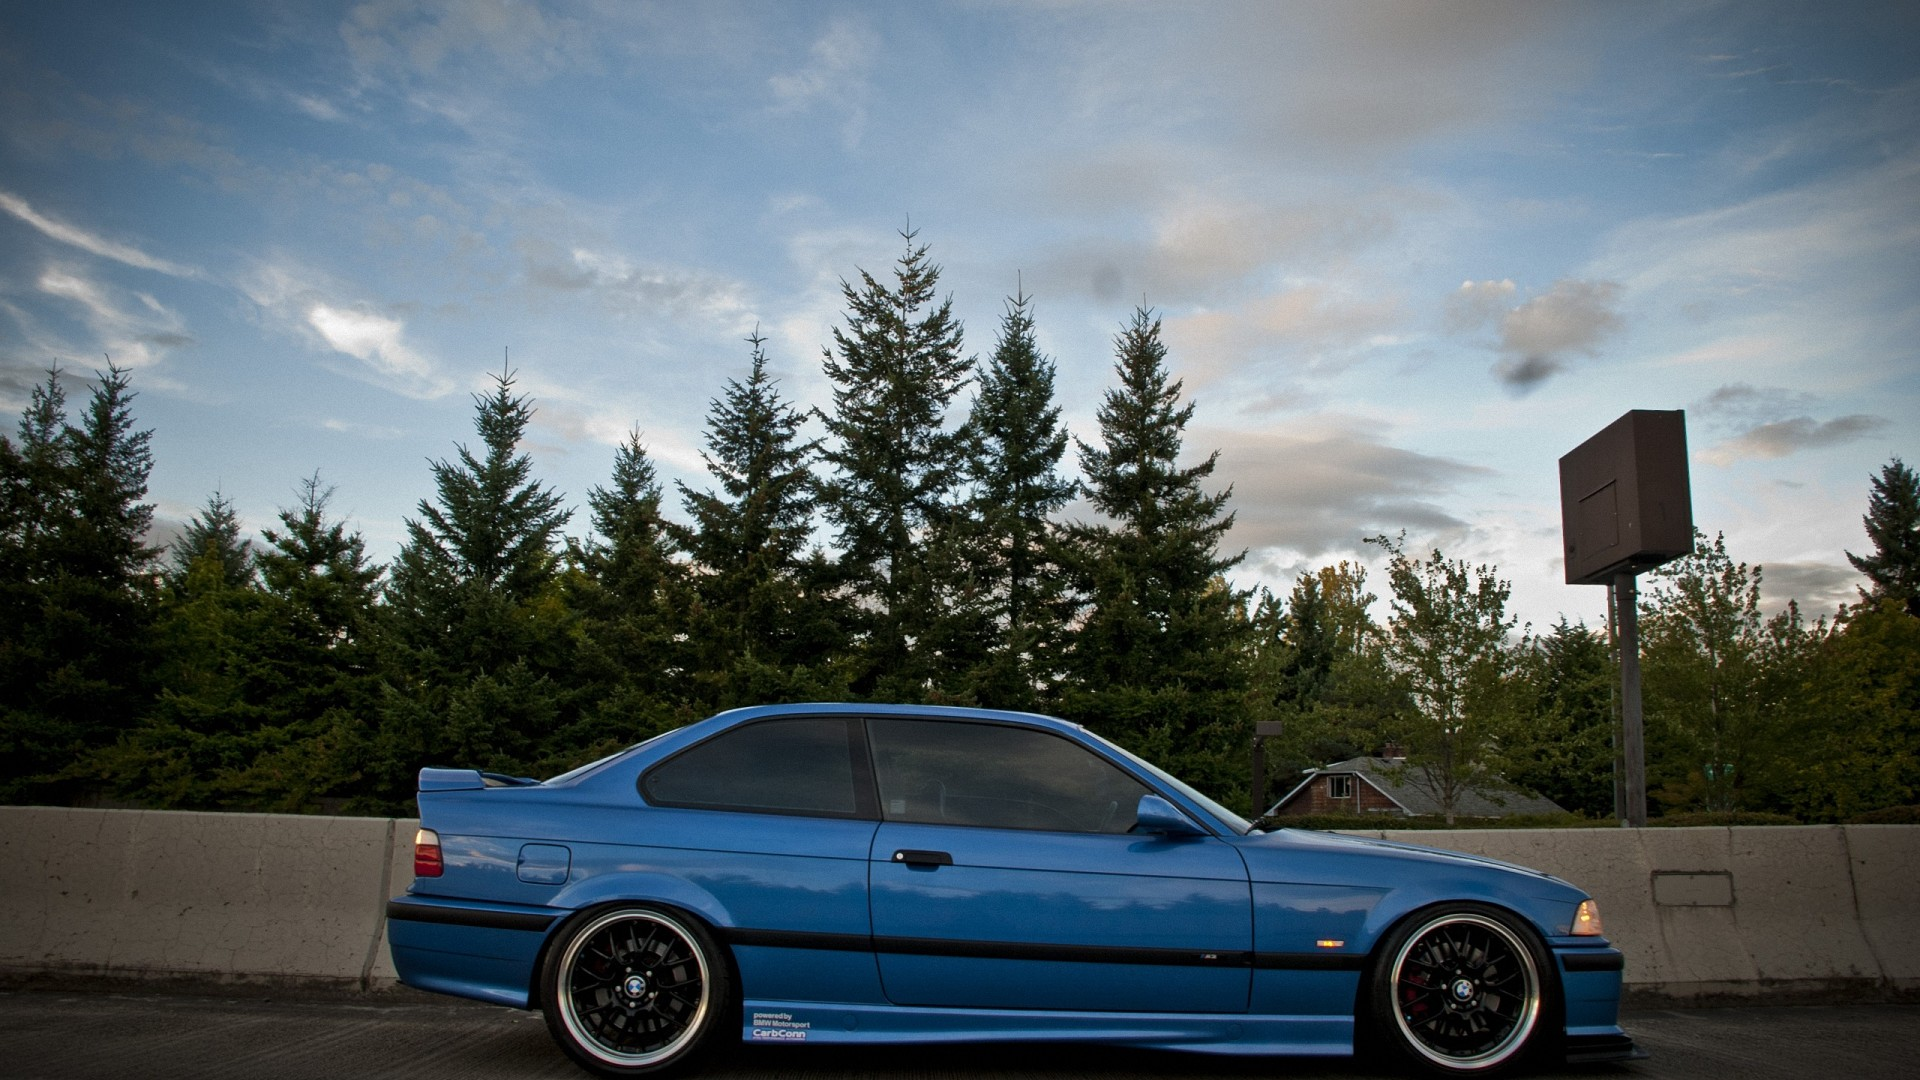 Bmw M3 Wallpaper >> E36 M3 Wallpapers (54+ background pictures)